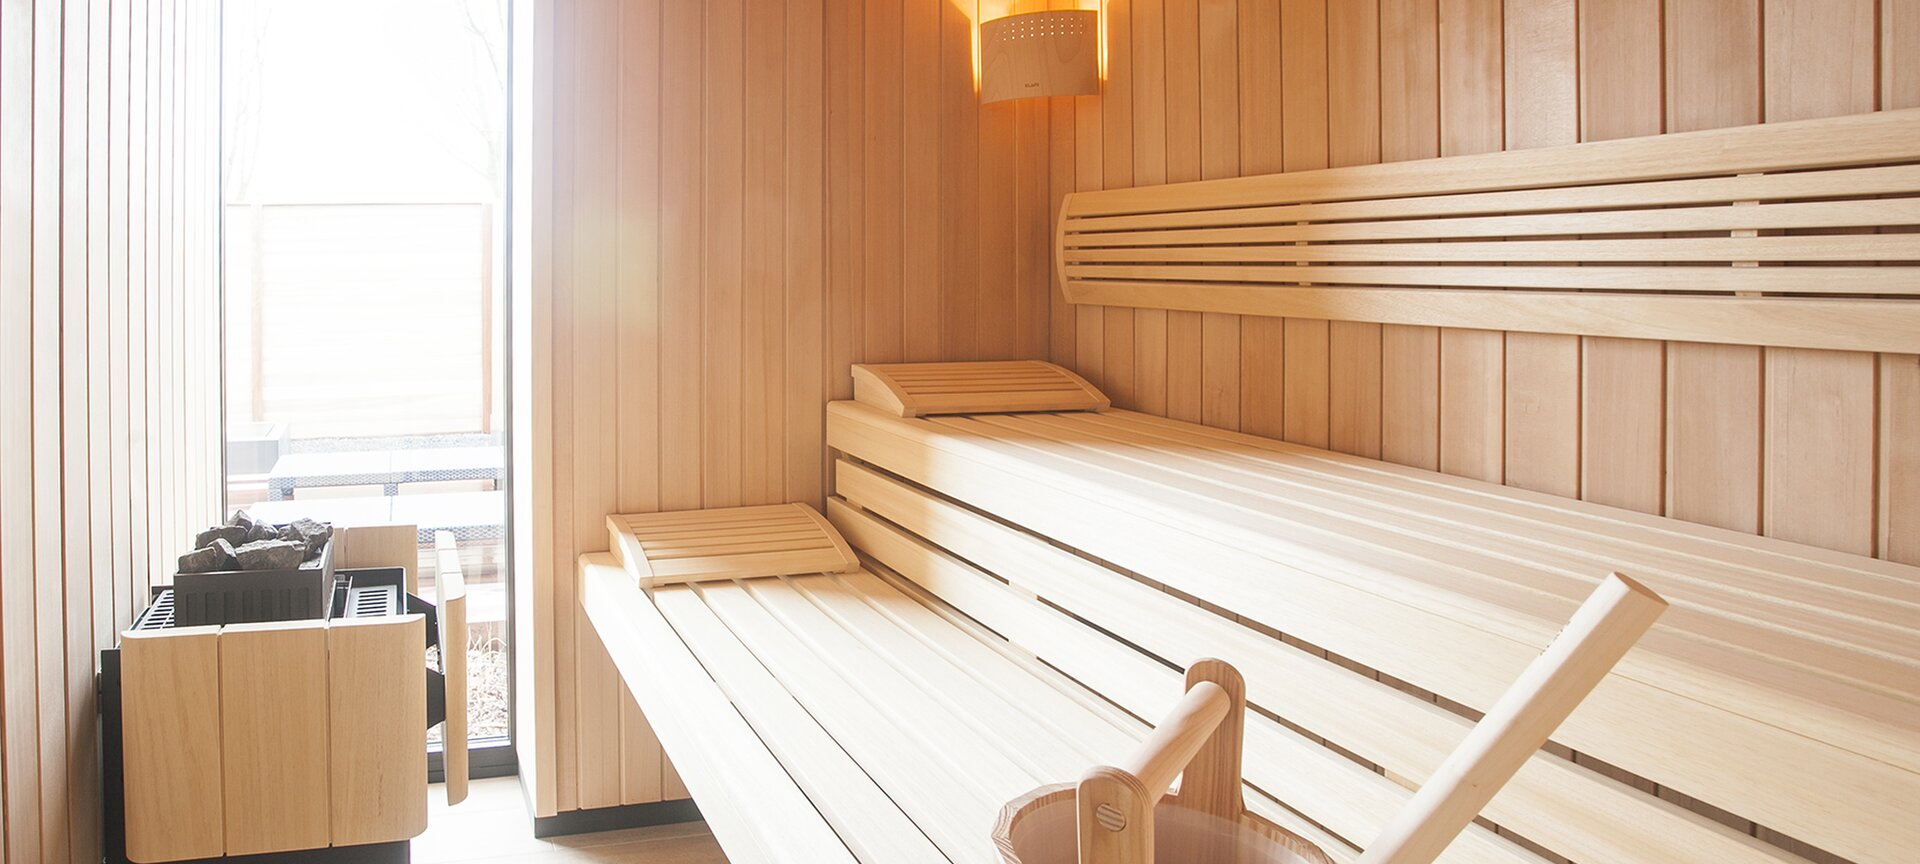 Pure~S Wellness - Sauna